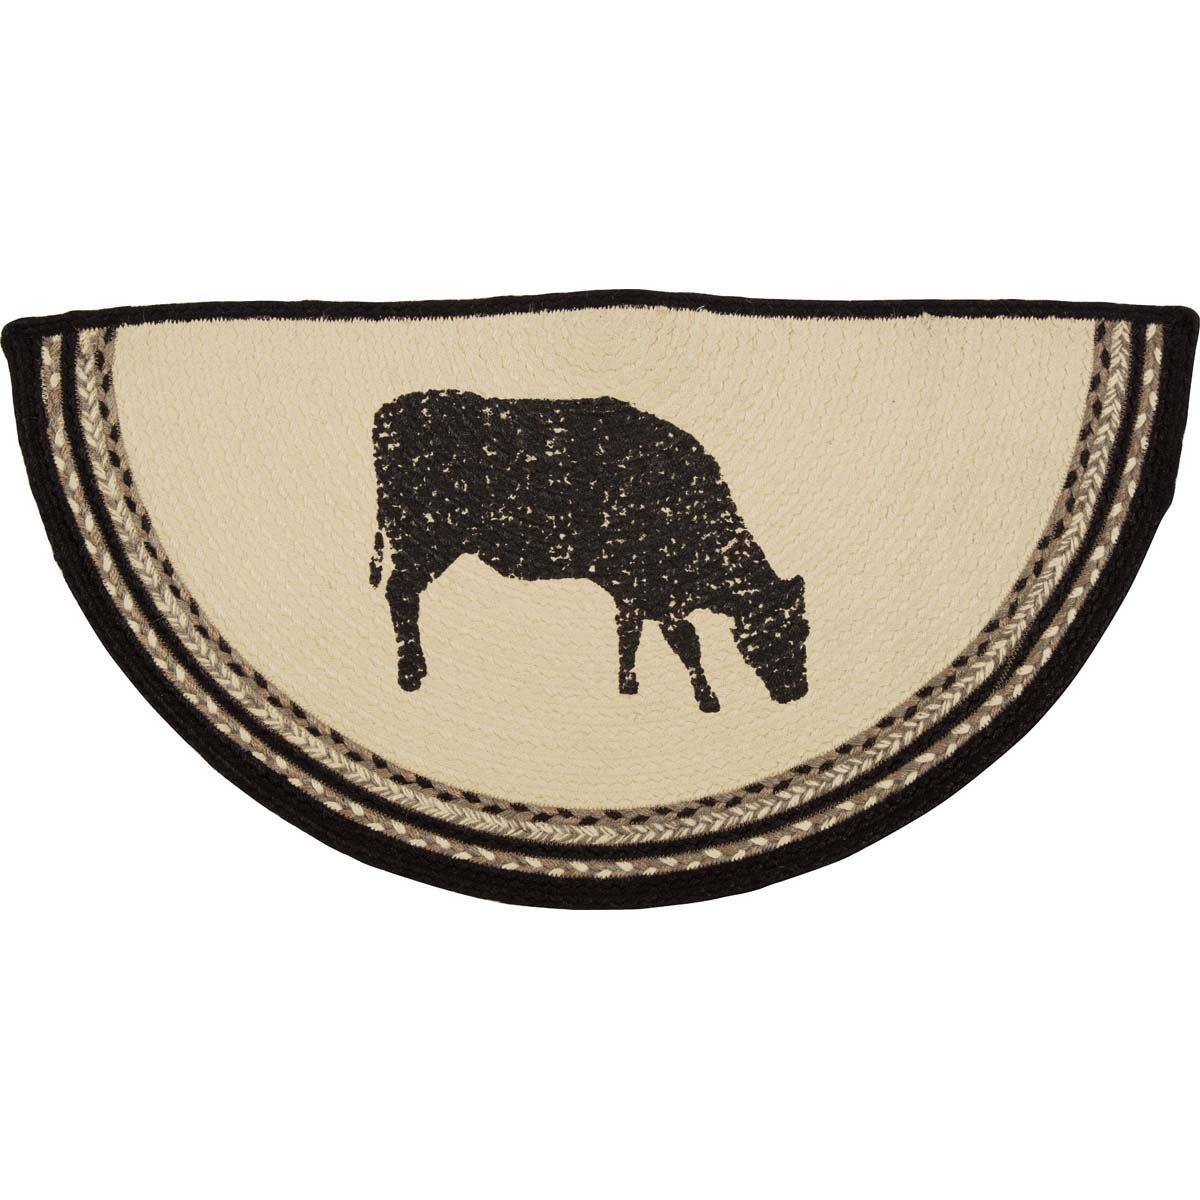 Sawyer Mill Charcoal Cow Jute Rug Half Circle